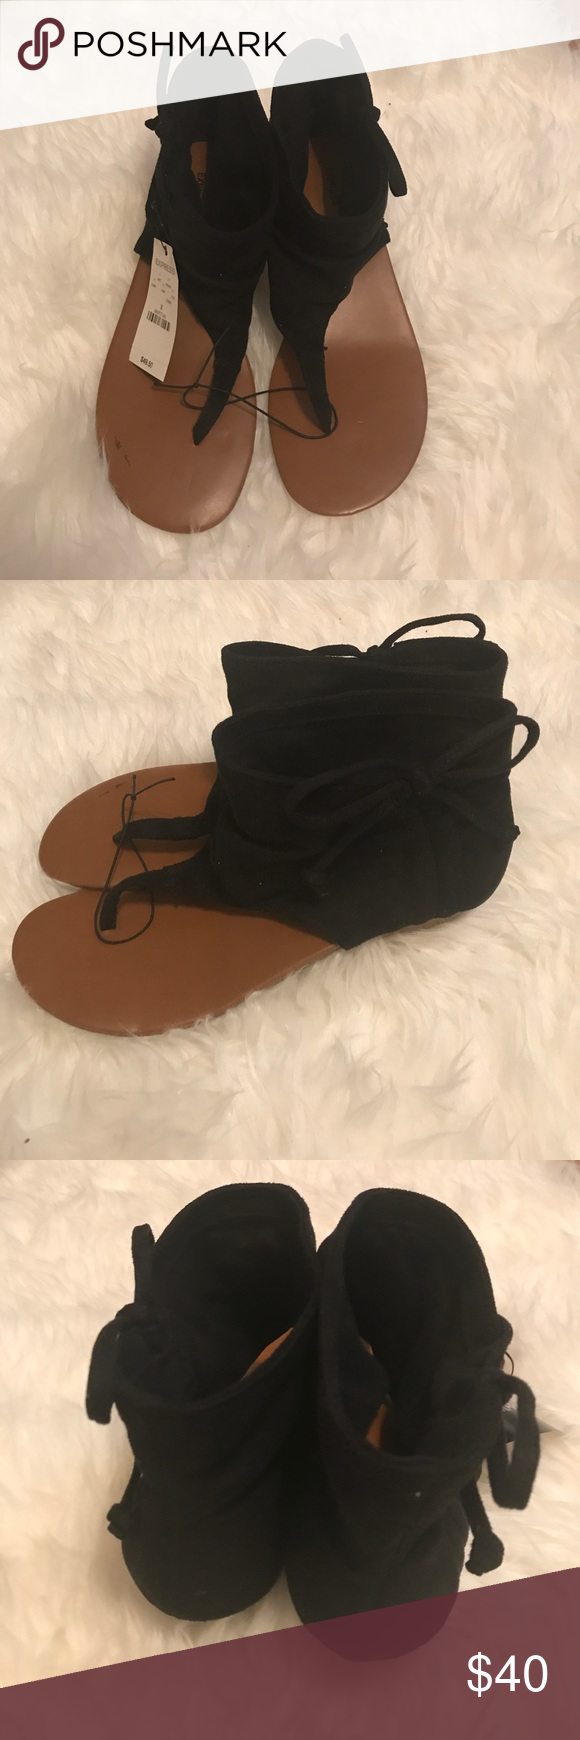 07fb58d5a (HOLD) Express Black Tan Sandals NWT. Express Black Sandals with side bow  accents. Size 8. Express Shoes Sandals